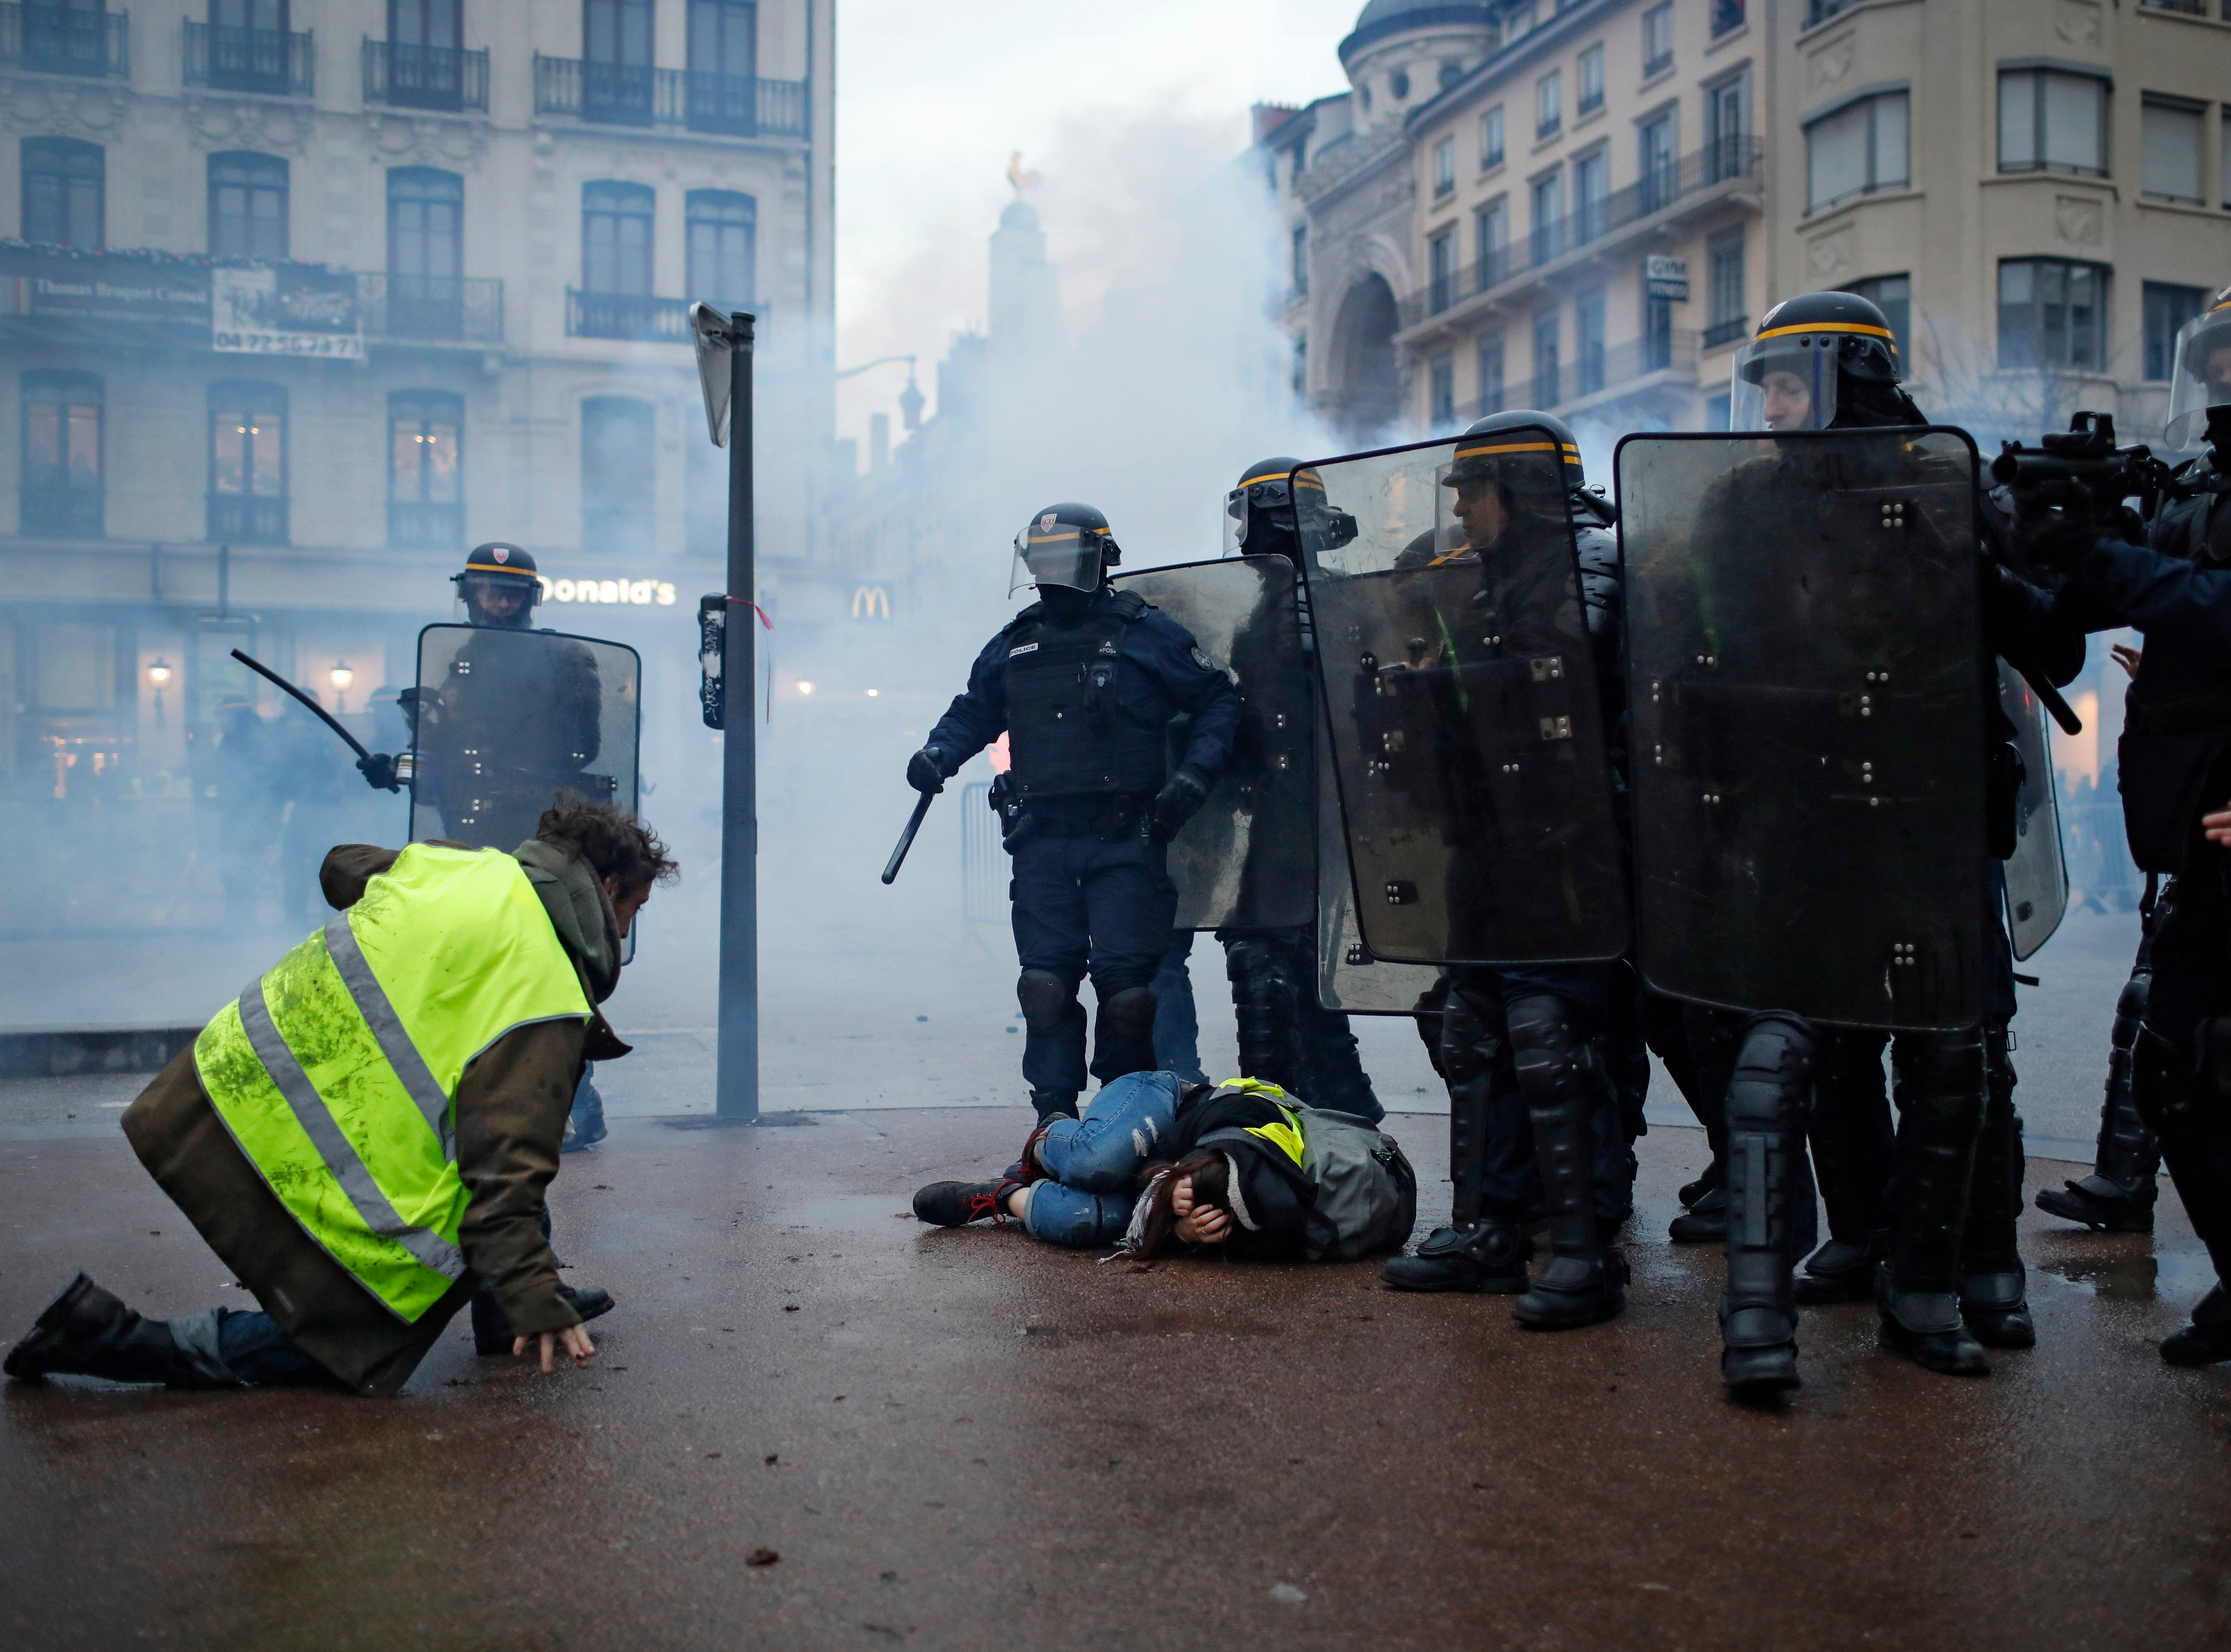 Police officers clash with demonstrators in Lyon, central France, Saturday, Dec. 8, 2018. The grassroots movement began as resistance against a rise in taxes for diesel and gasoline, but quickly expanded to encompass frustration at stagnant incomes and the growing cost of living.